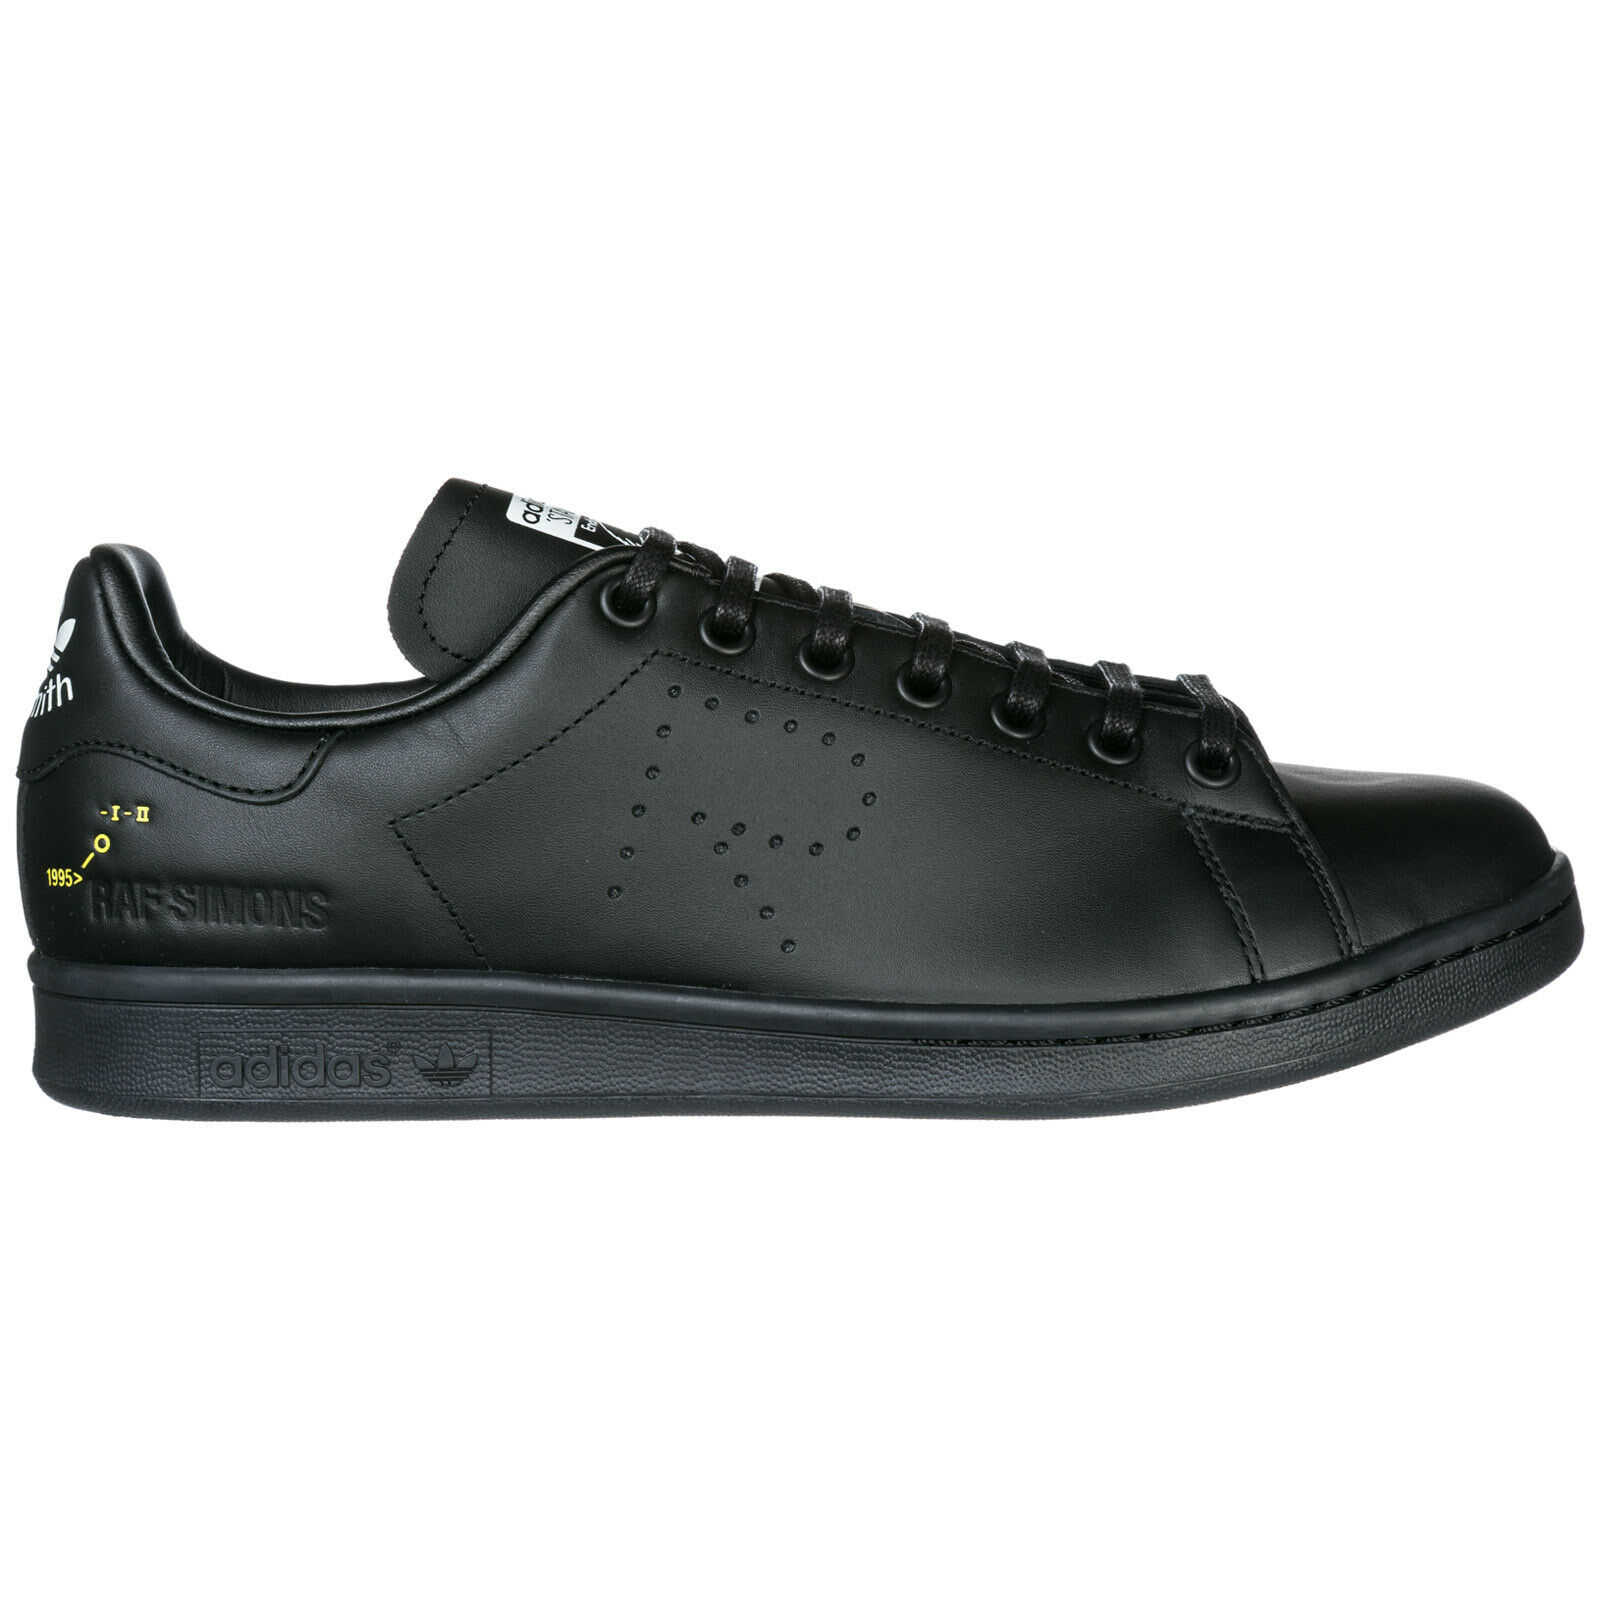 ADIDAS BY RAF SIMONS MEN'S SHOES LEATHER TRAINERS SNEAKERS